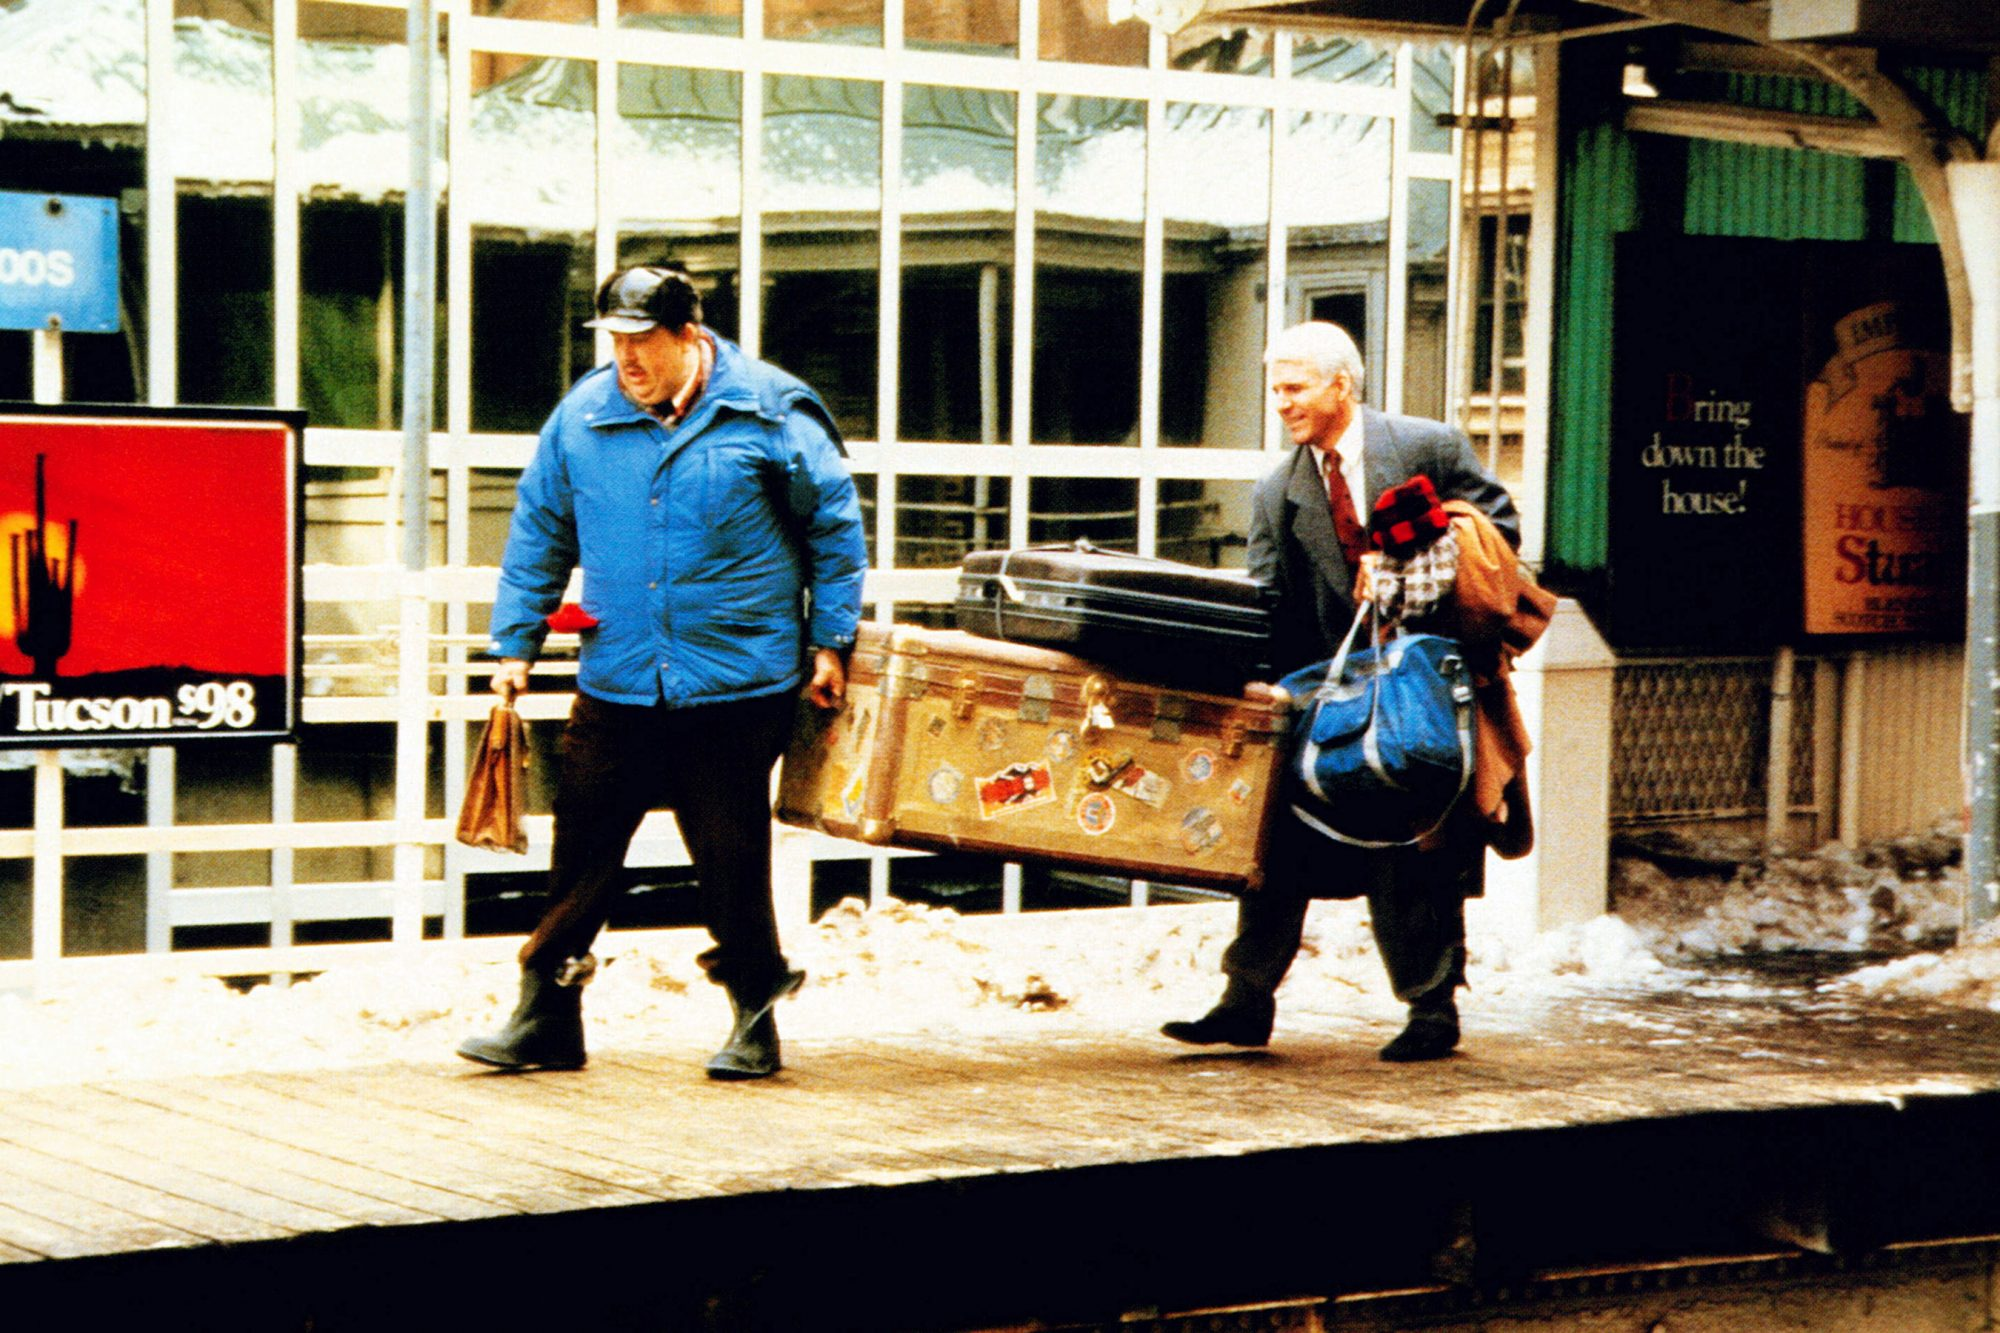 PLANES, TRAINS AND AUTOMOBILES, from left: John Candy, Steve Martin, 1987, © Paramount/courtesy Ever